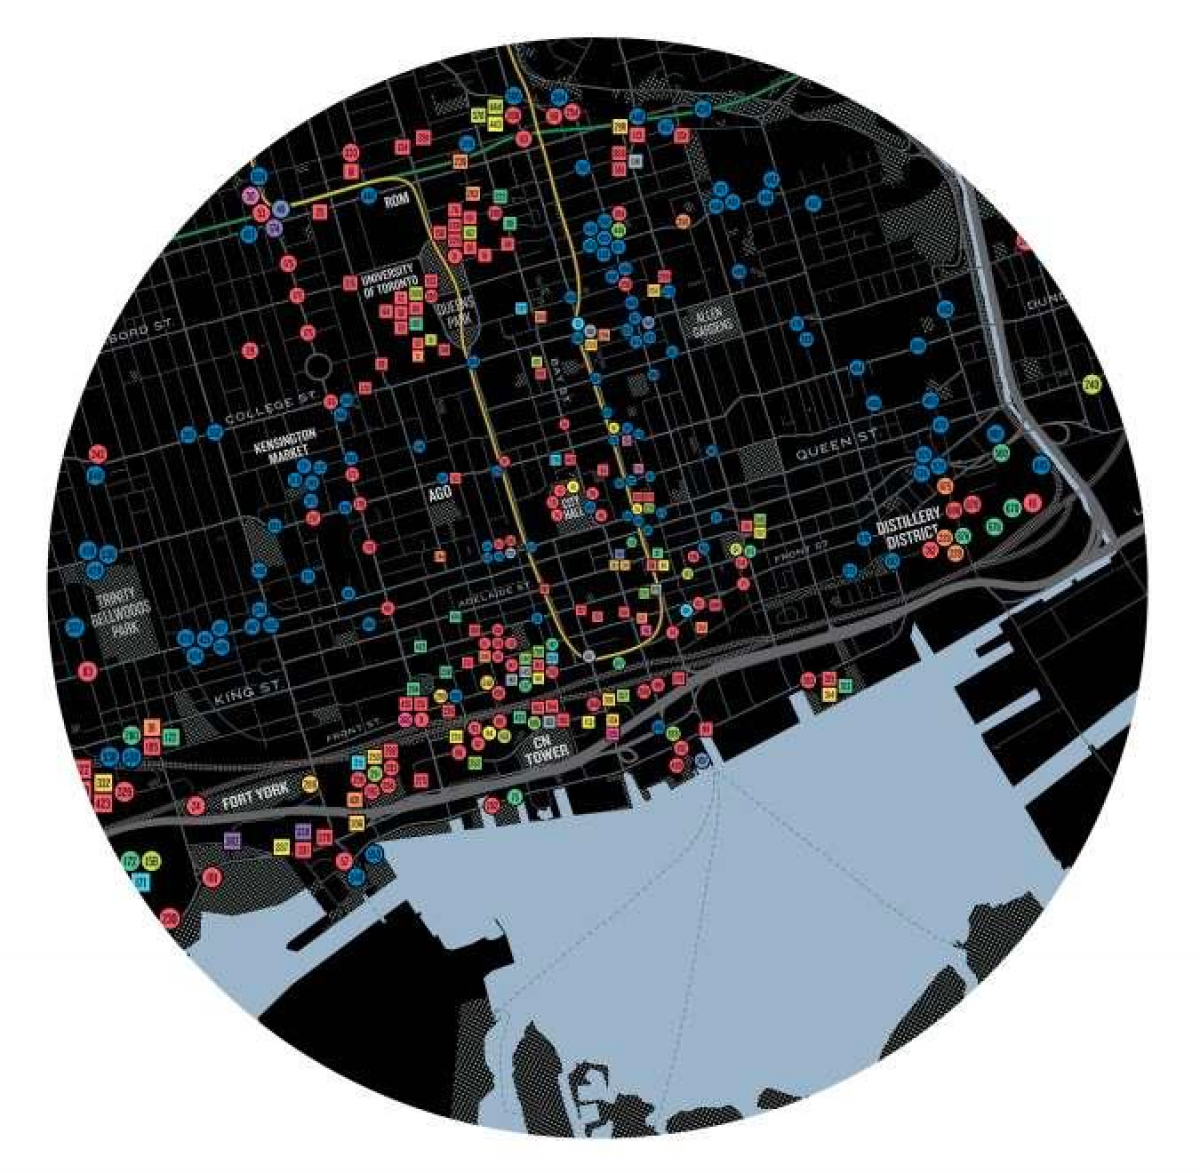 a map of toronto's downtown area